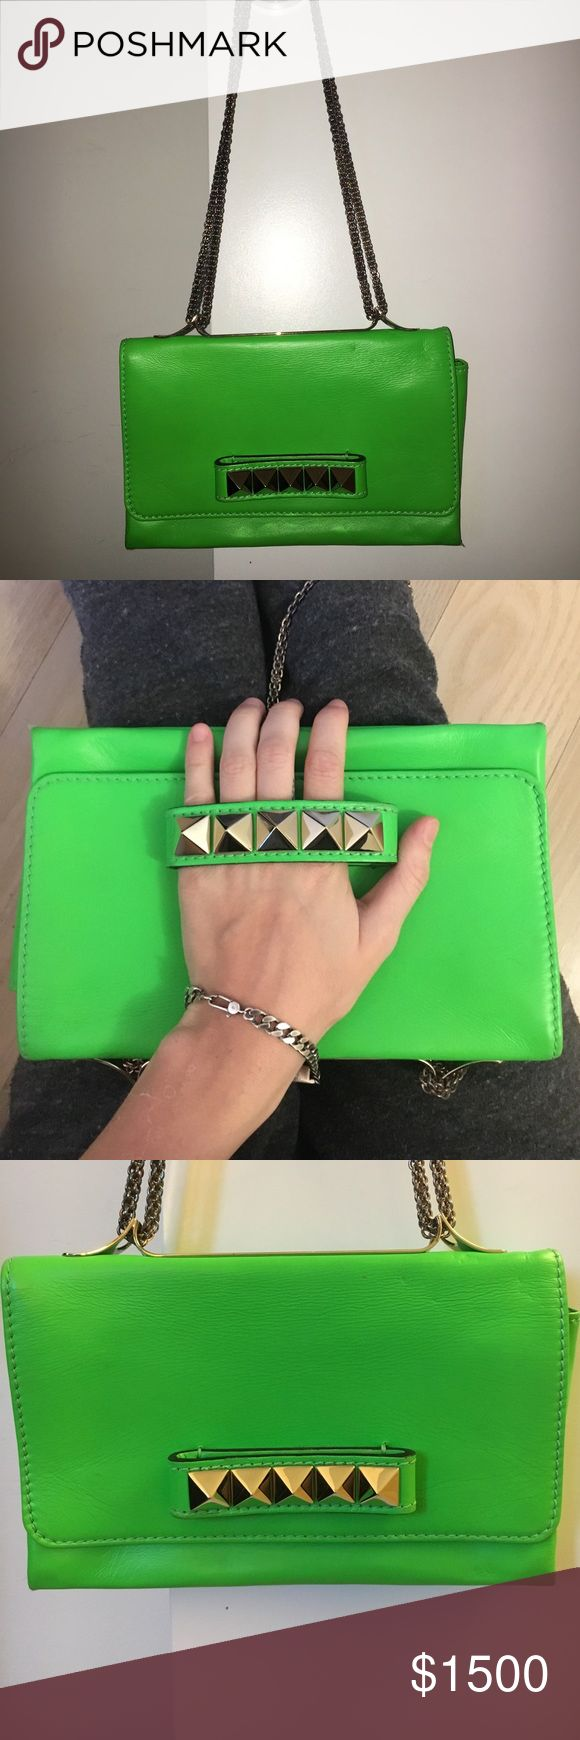 NEW knuckle Valentino Neon Green Cross body purse ON SALE 🚨. WORN ONCE. Hand knuckle Neon Green Valentino cross body purse with stud detail and chain straps to make it long, short or wear it as a clutch. Looks BRAND NEW. Comes with DUST bag. TAKING OFFERS! Valentino Bags Shoulder Bags